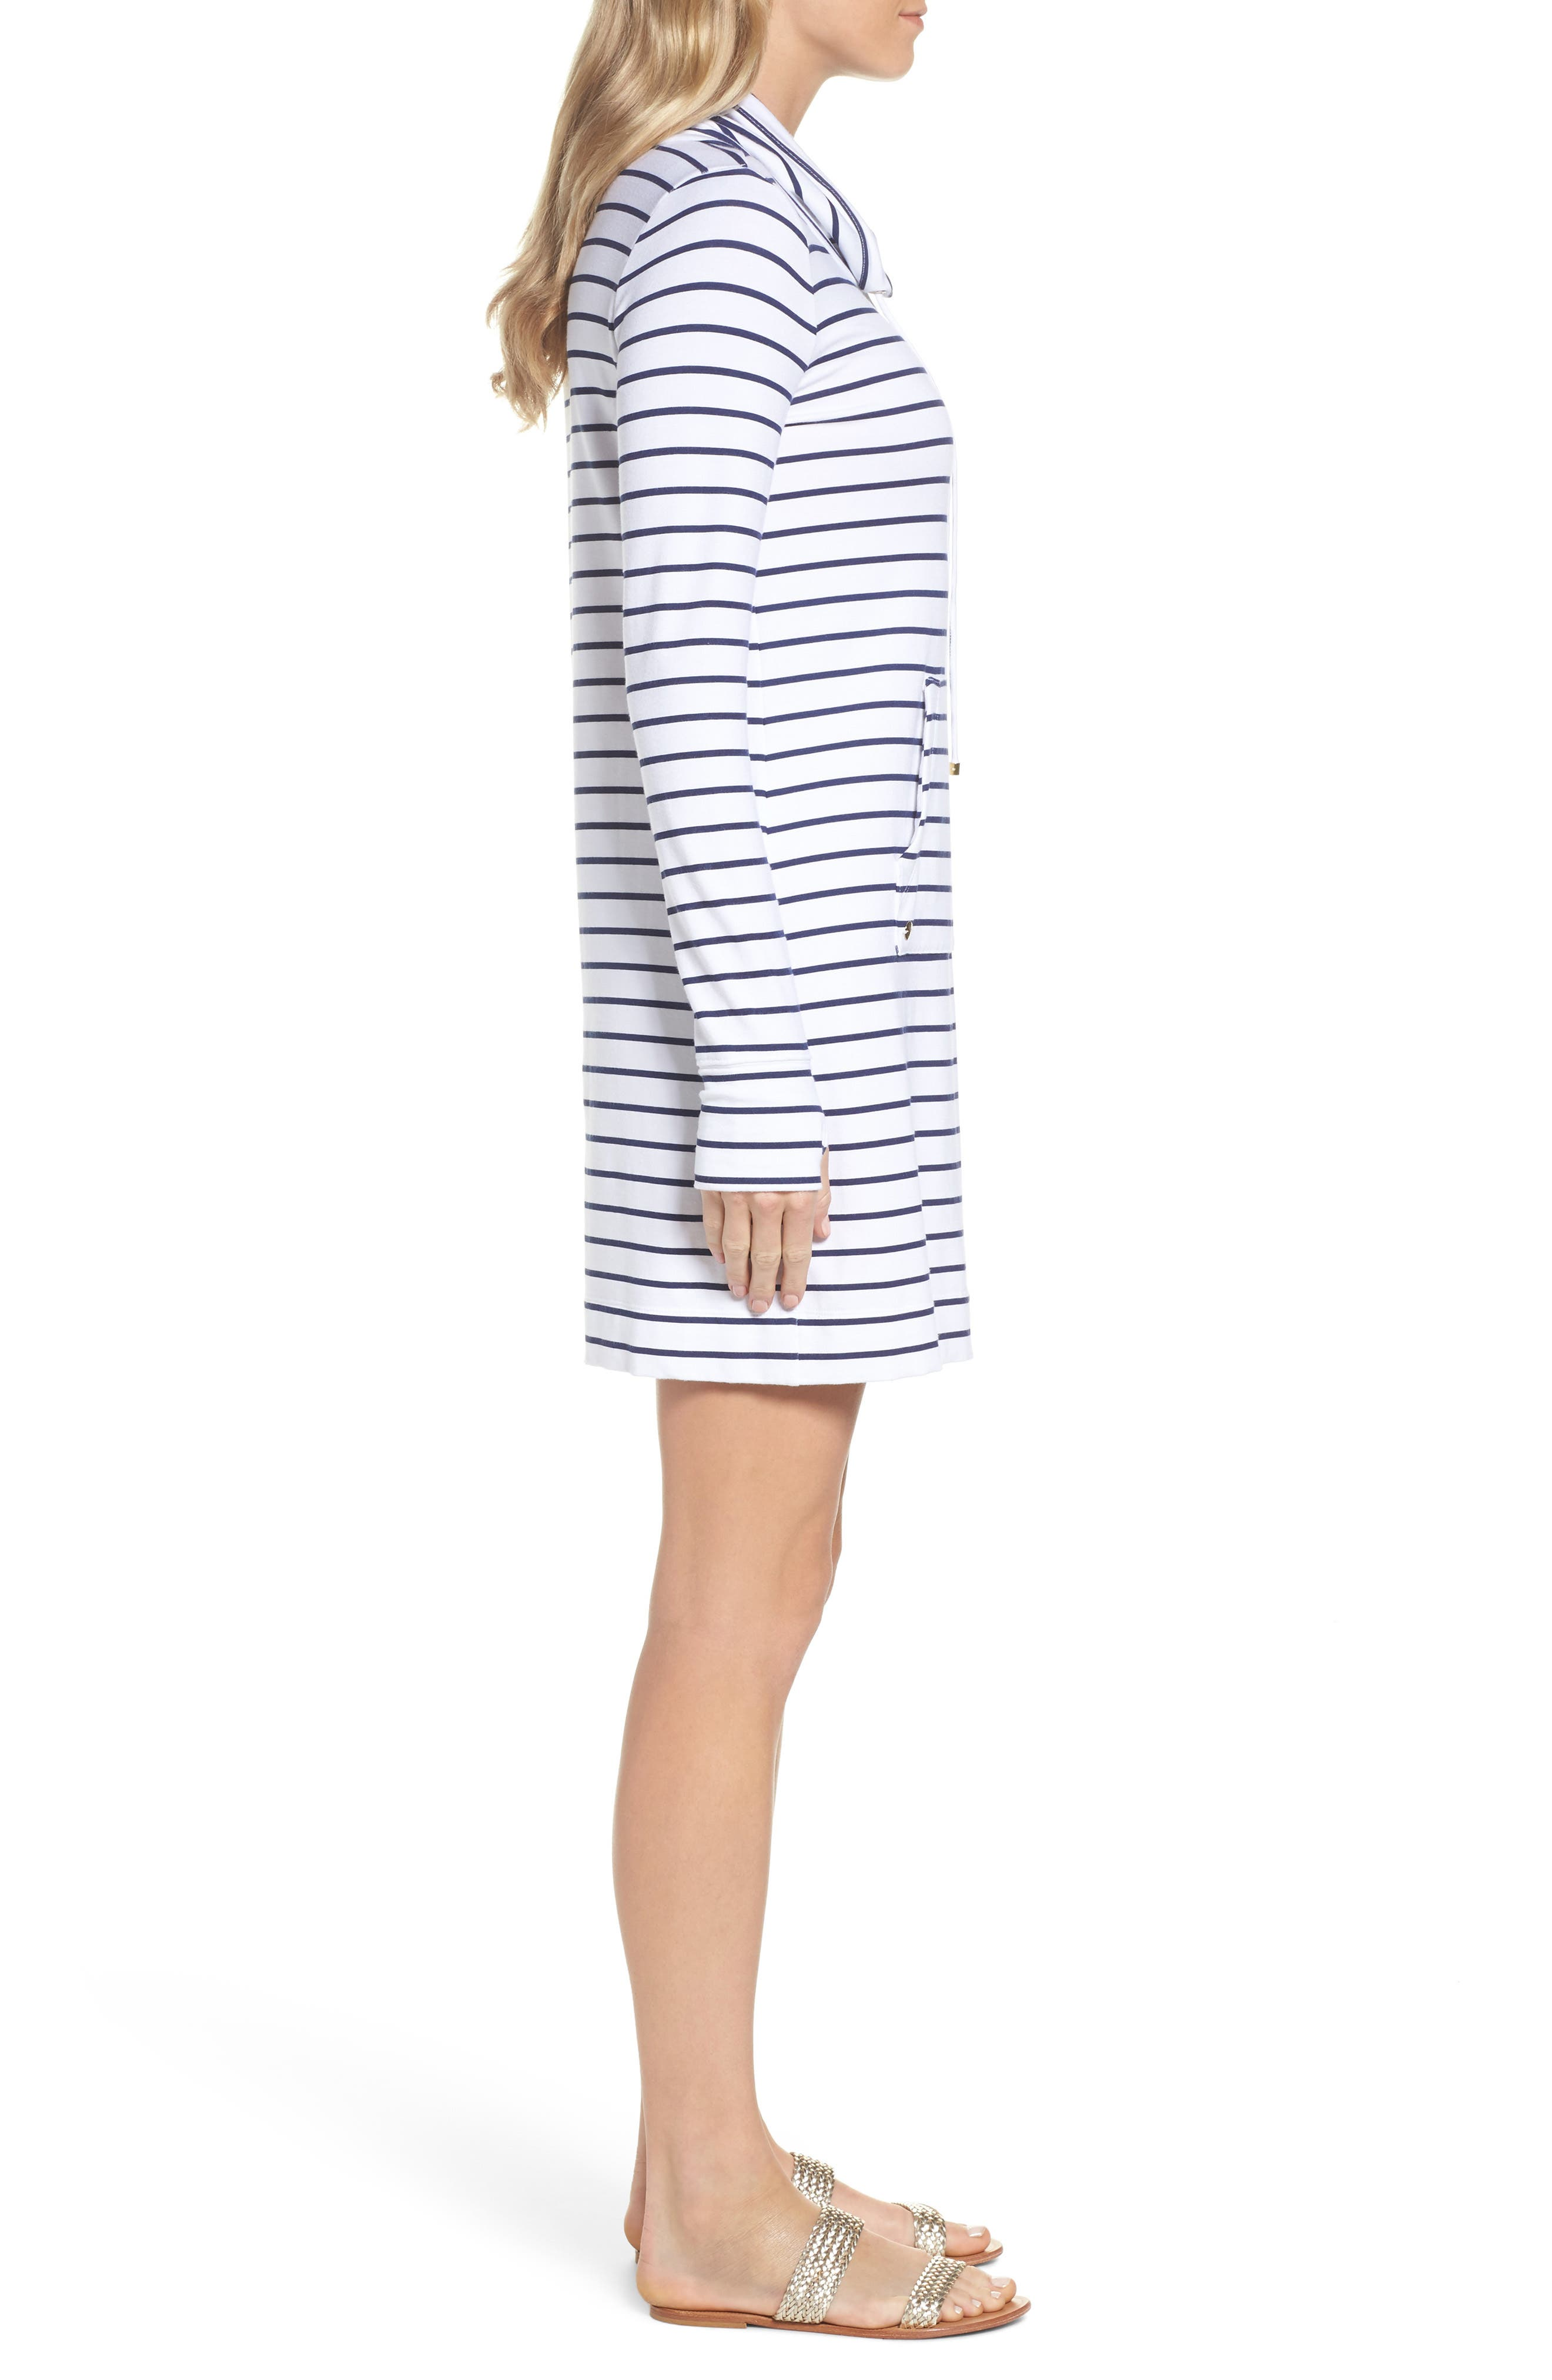 Hilary UPF 50+ Dress,                             Alternate thumbnail 3, color,                             Bright Navy Mystic Stripe